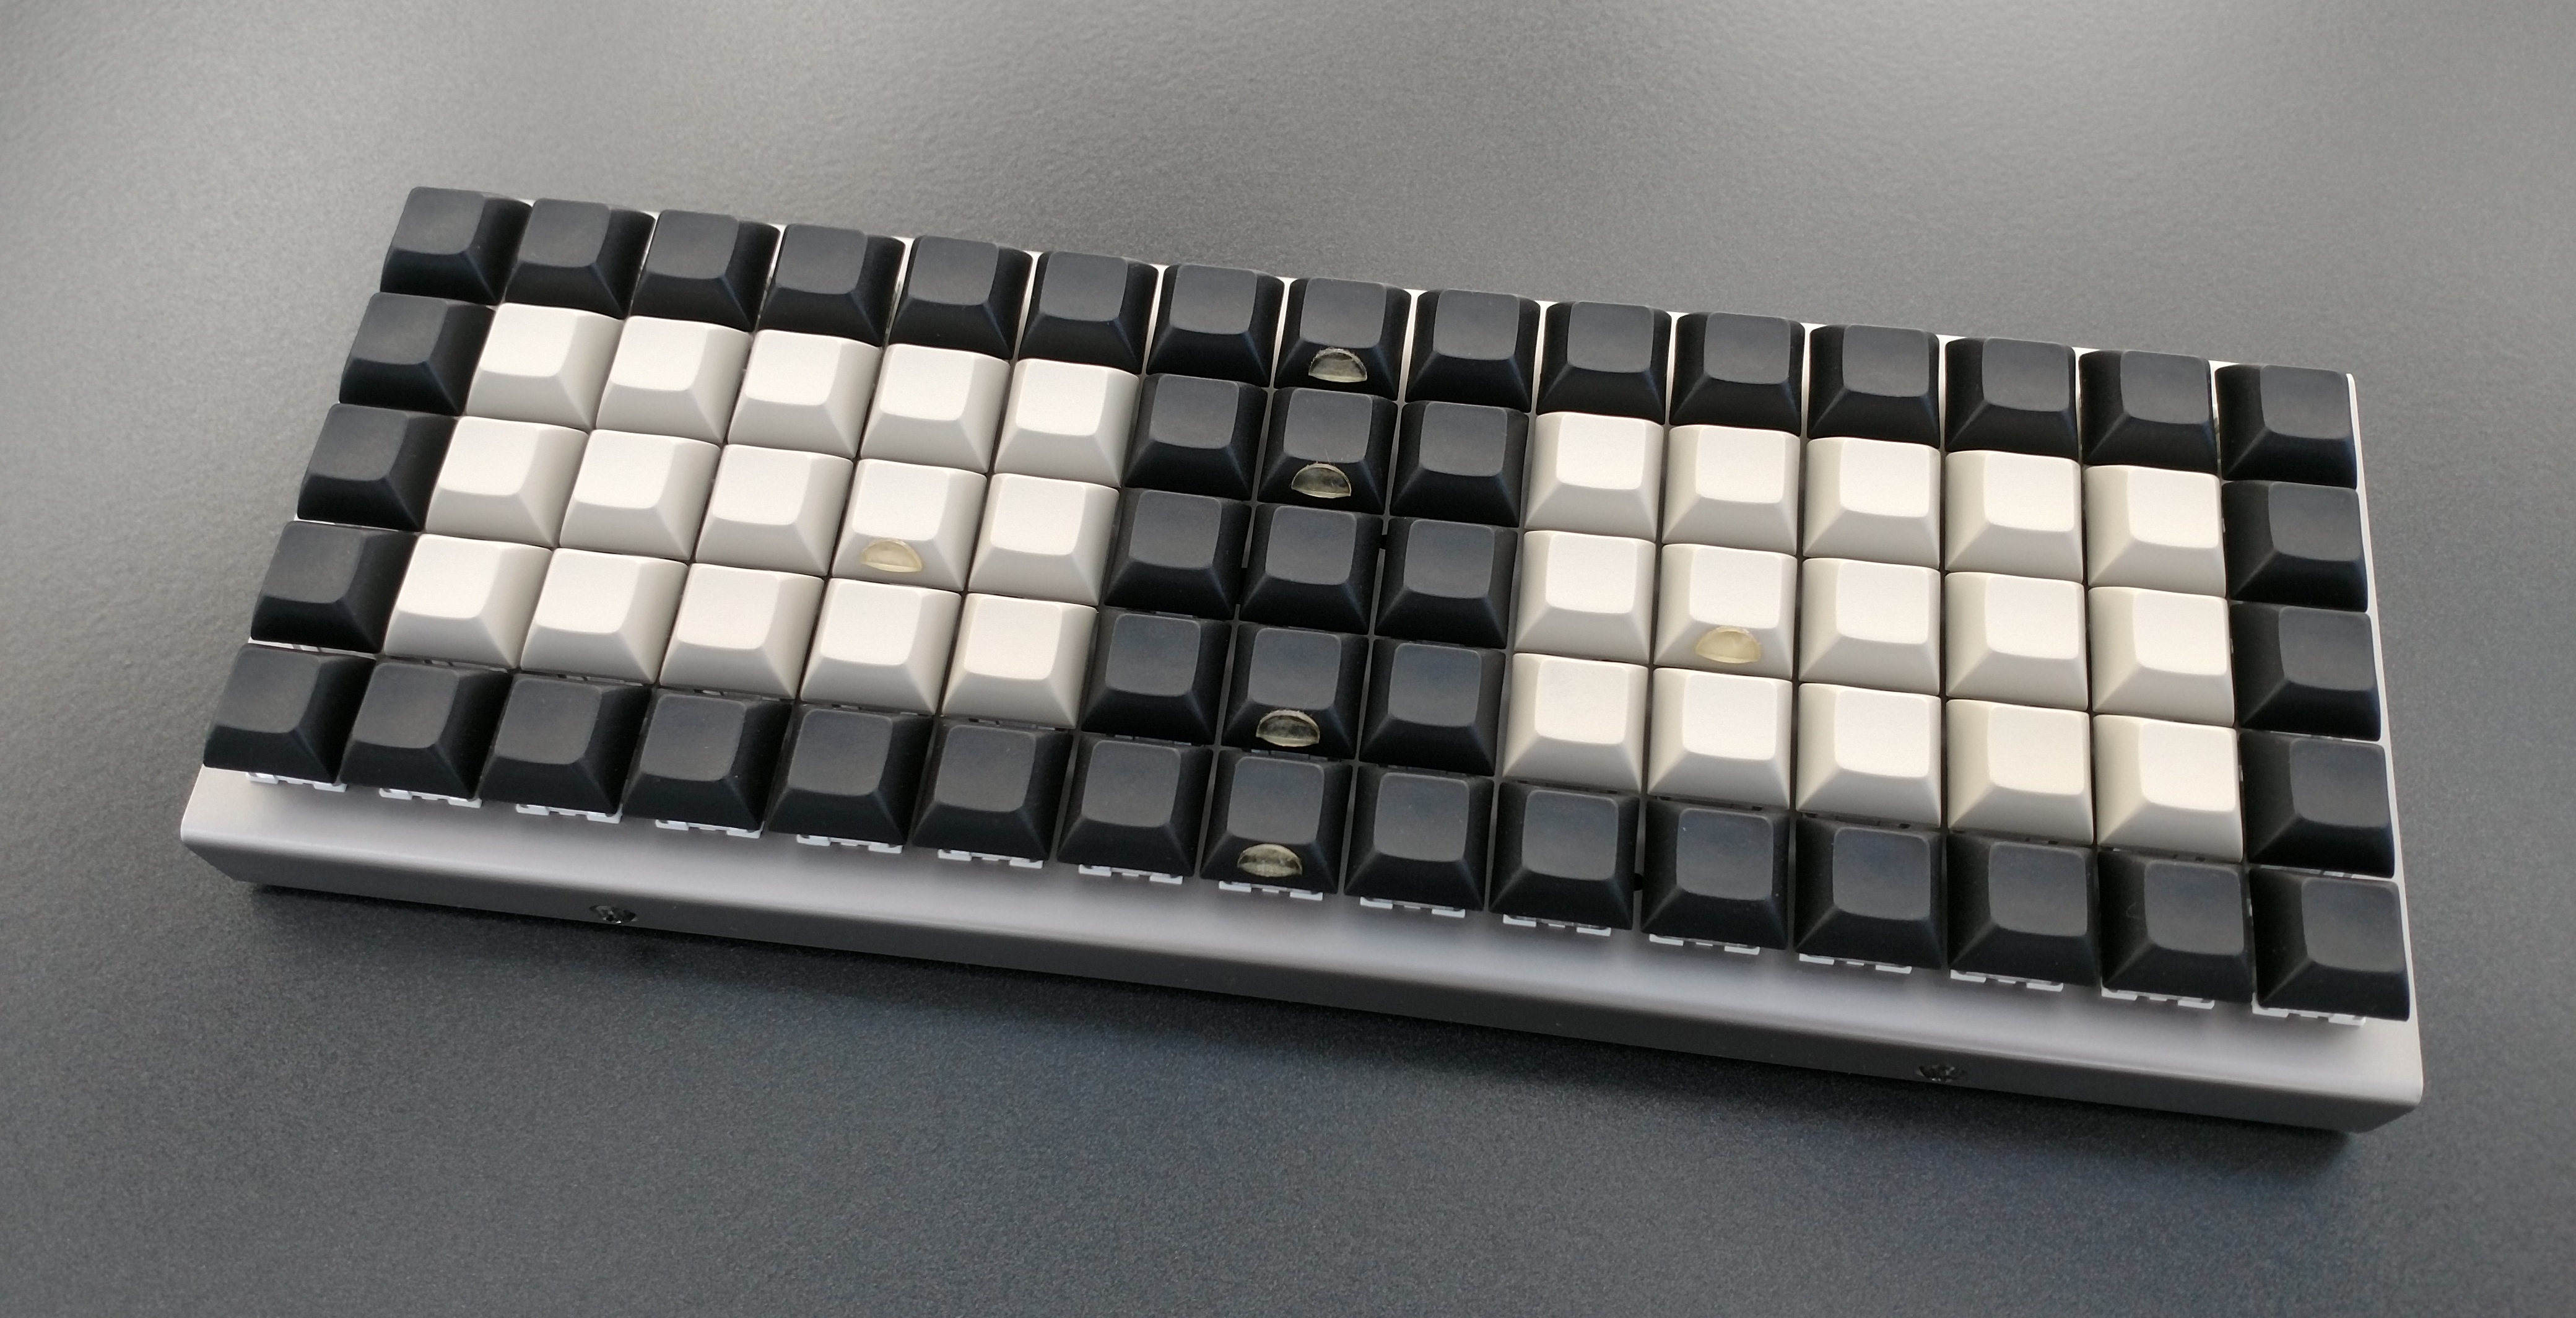 Building a custom mechanical keyboard without soldering: The